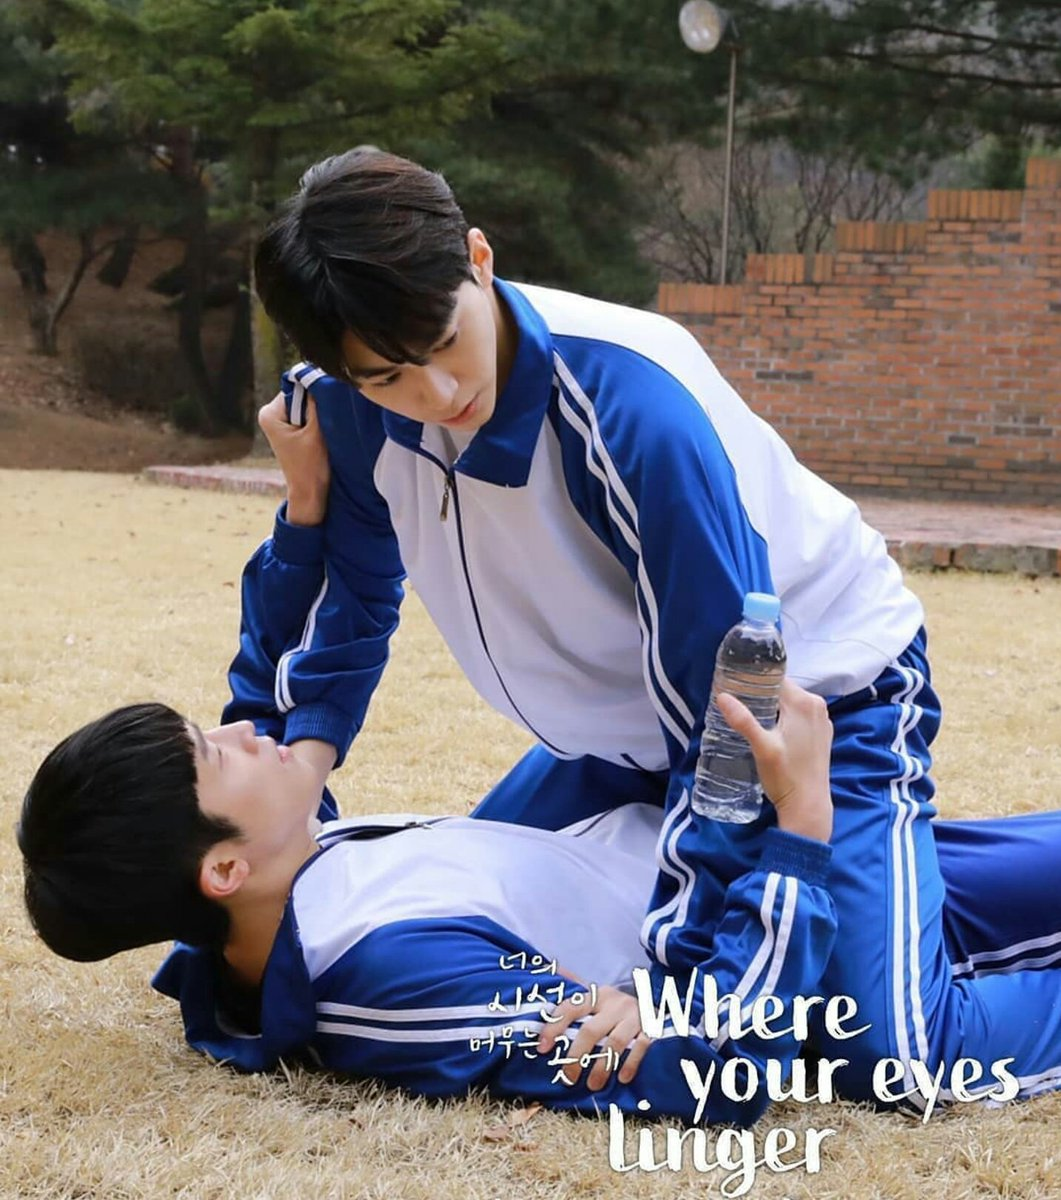 Its FRIDAY! #คั่นกู ended but hey theres another series to look forward every frigay! #beforeyoureyesstop<br>http://pic.twitter.com/aEB2j0AbP8